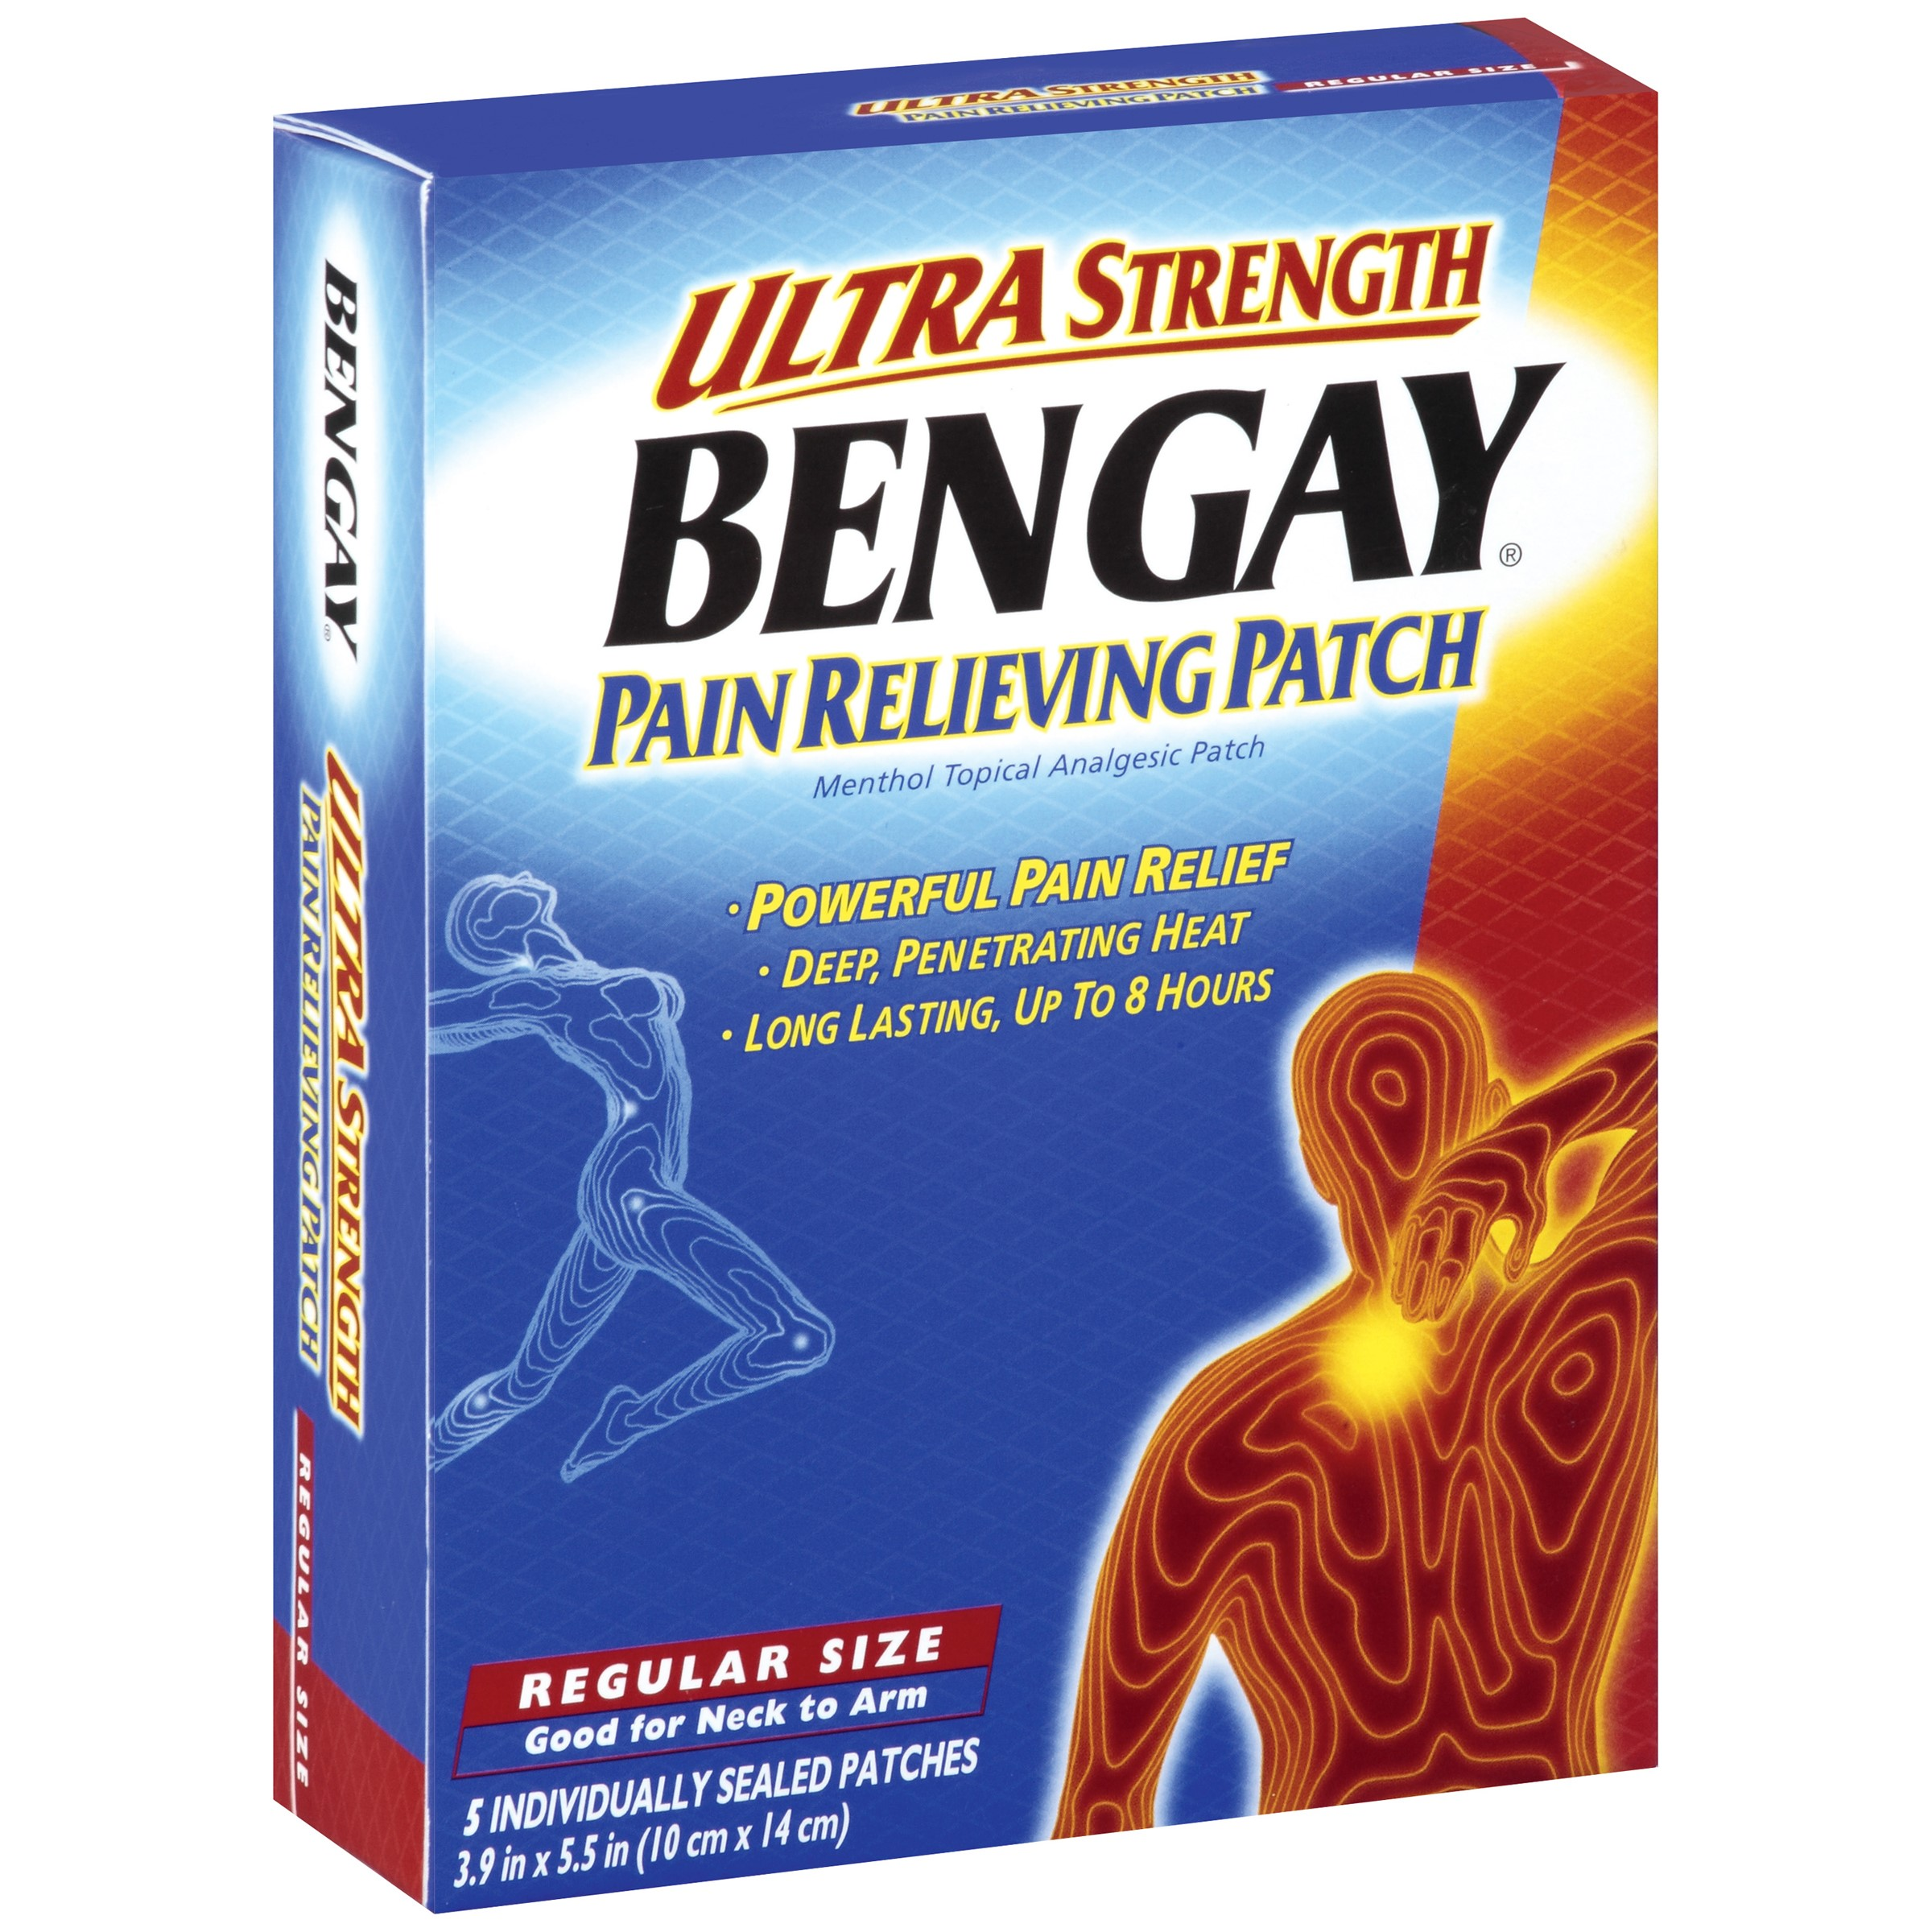 Bengay Ultra Strength, Pain Relieving Patch, Regular Size, 5 Ct